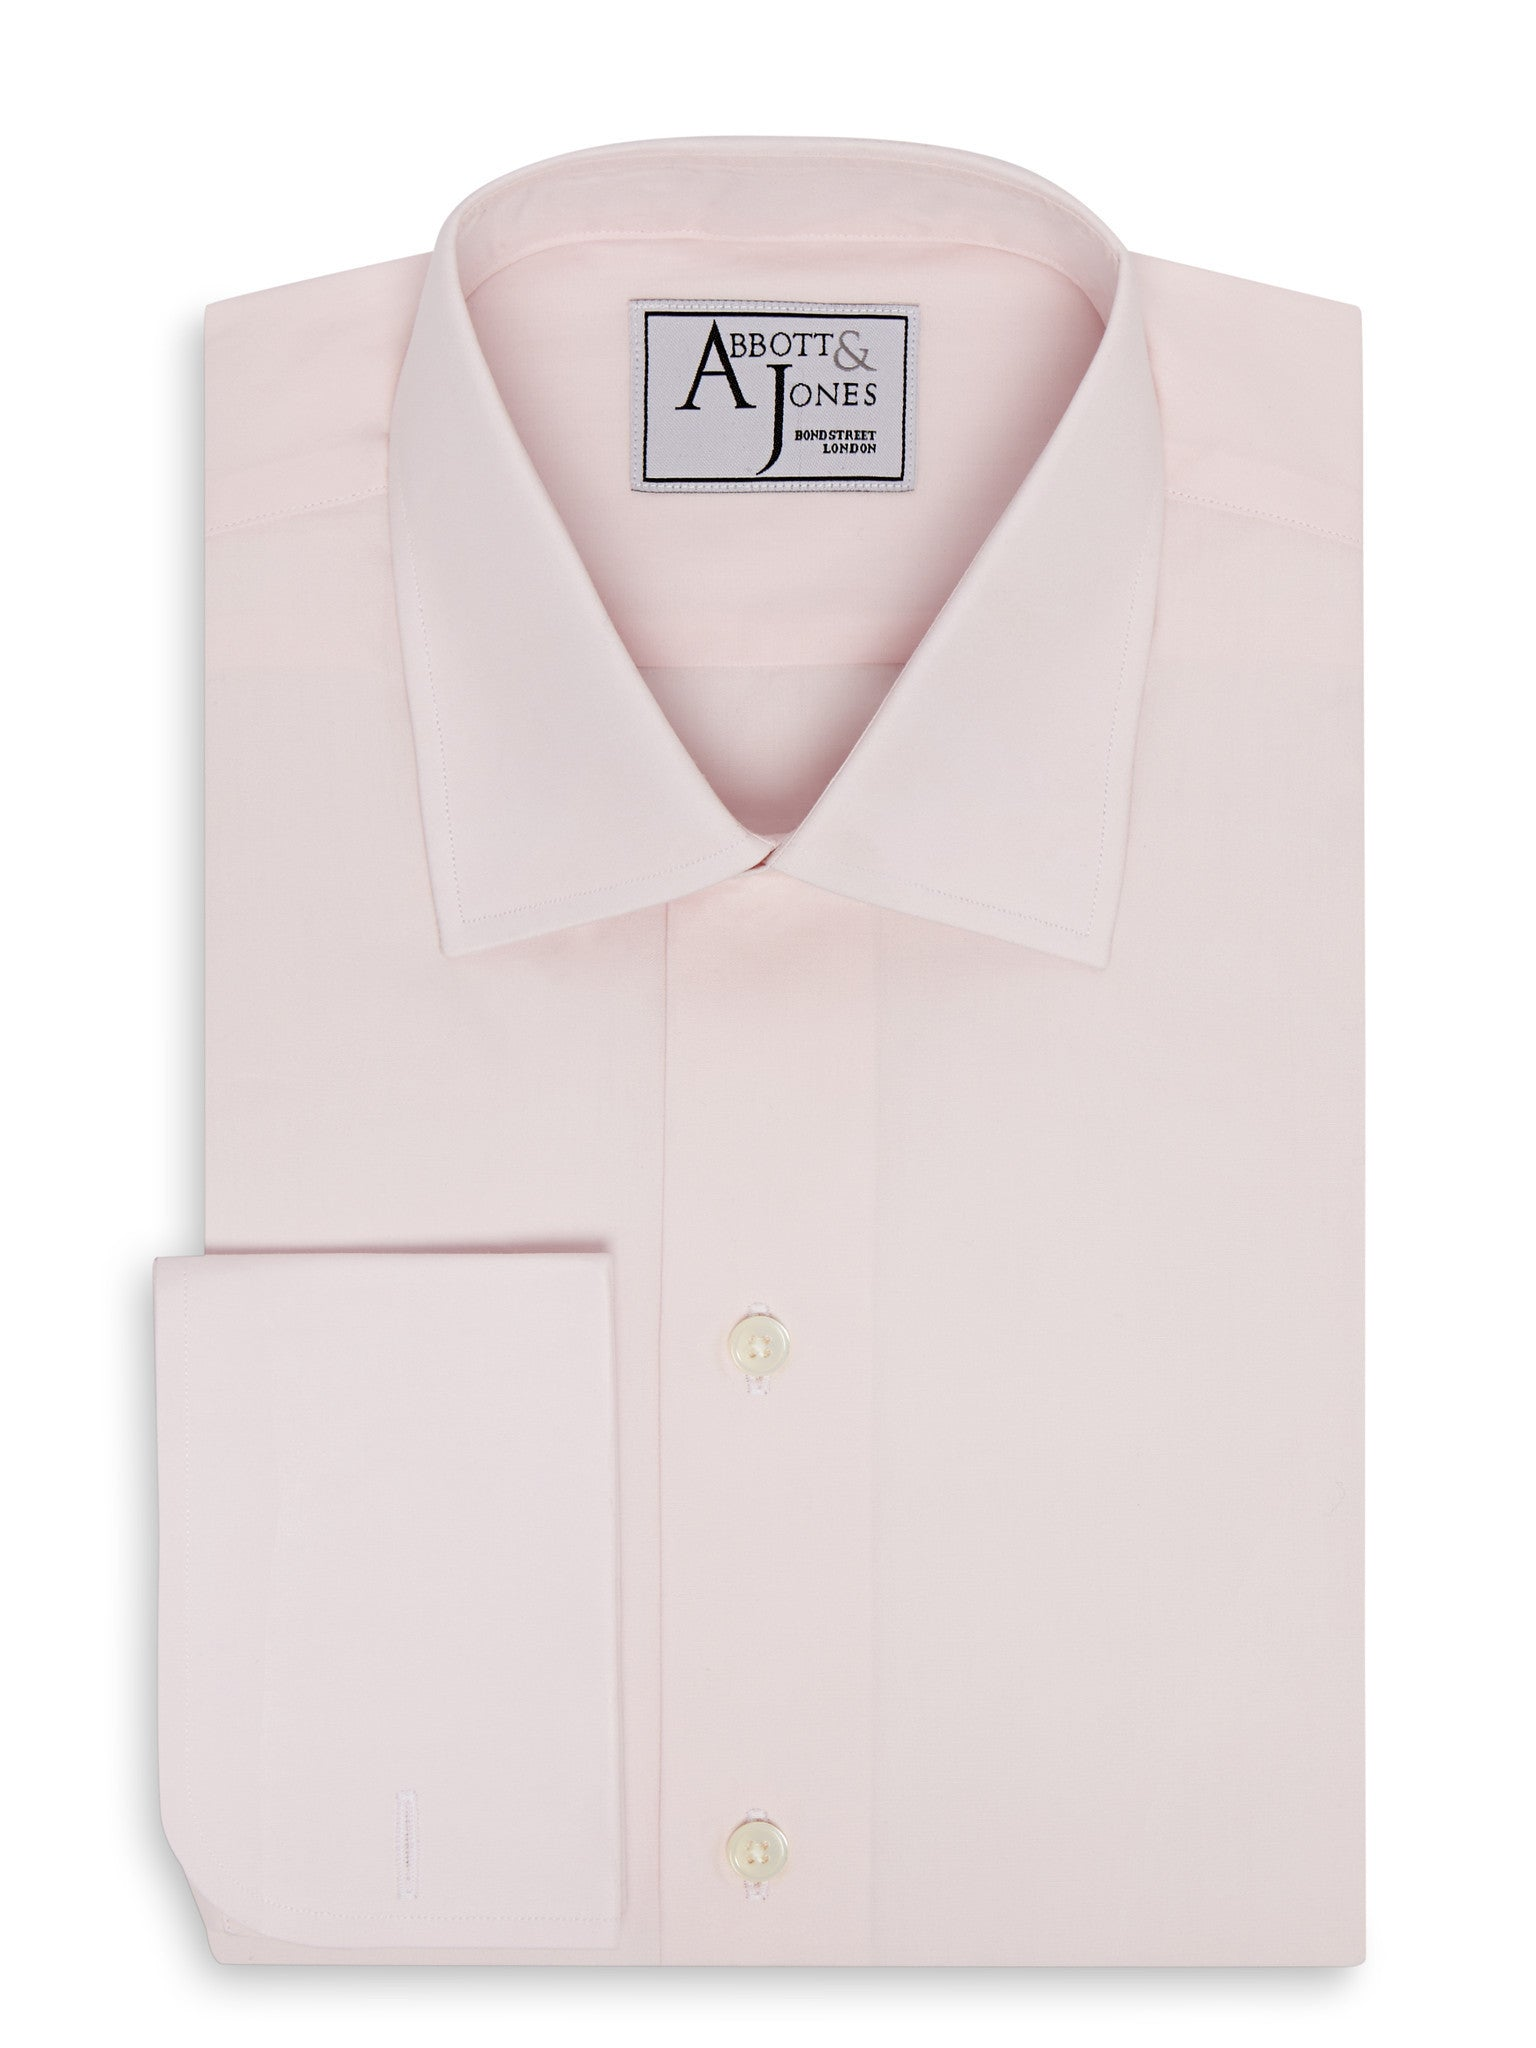 Bespoke - The Essential Pink Shirt